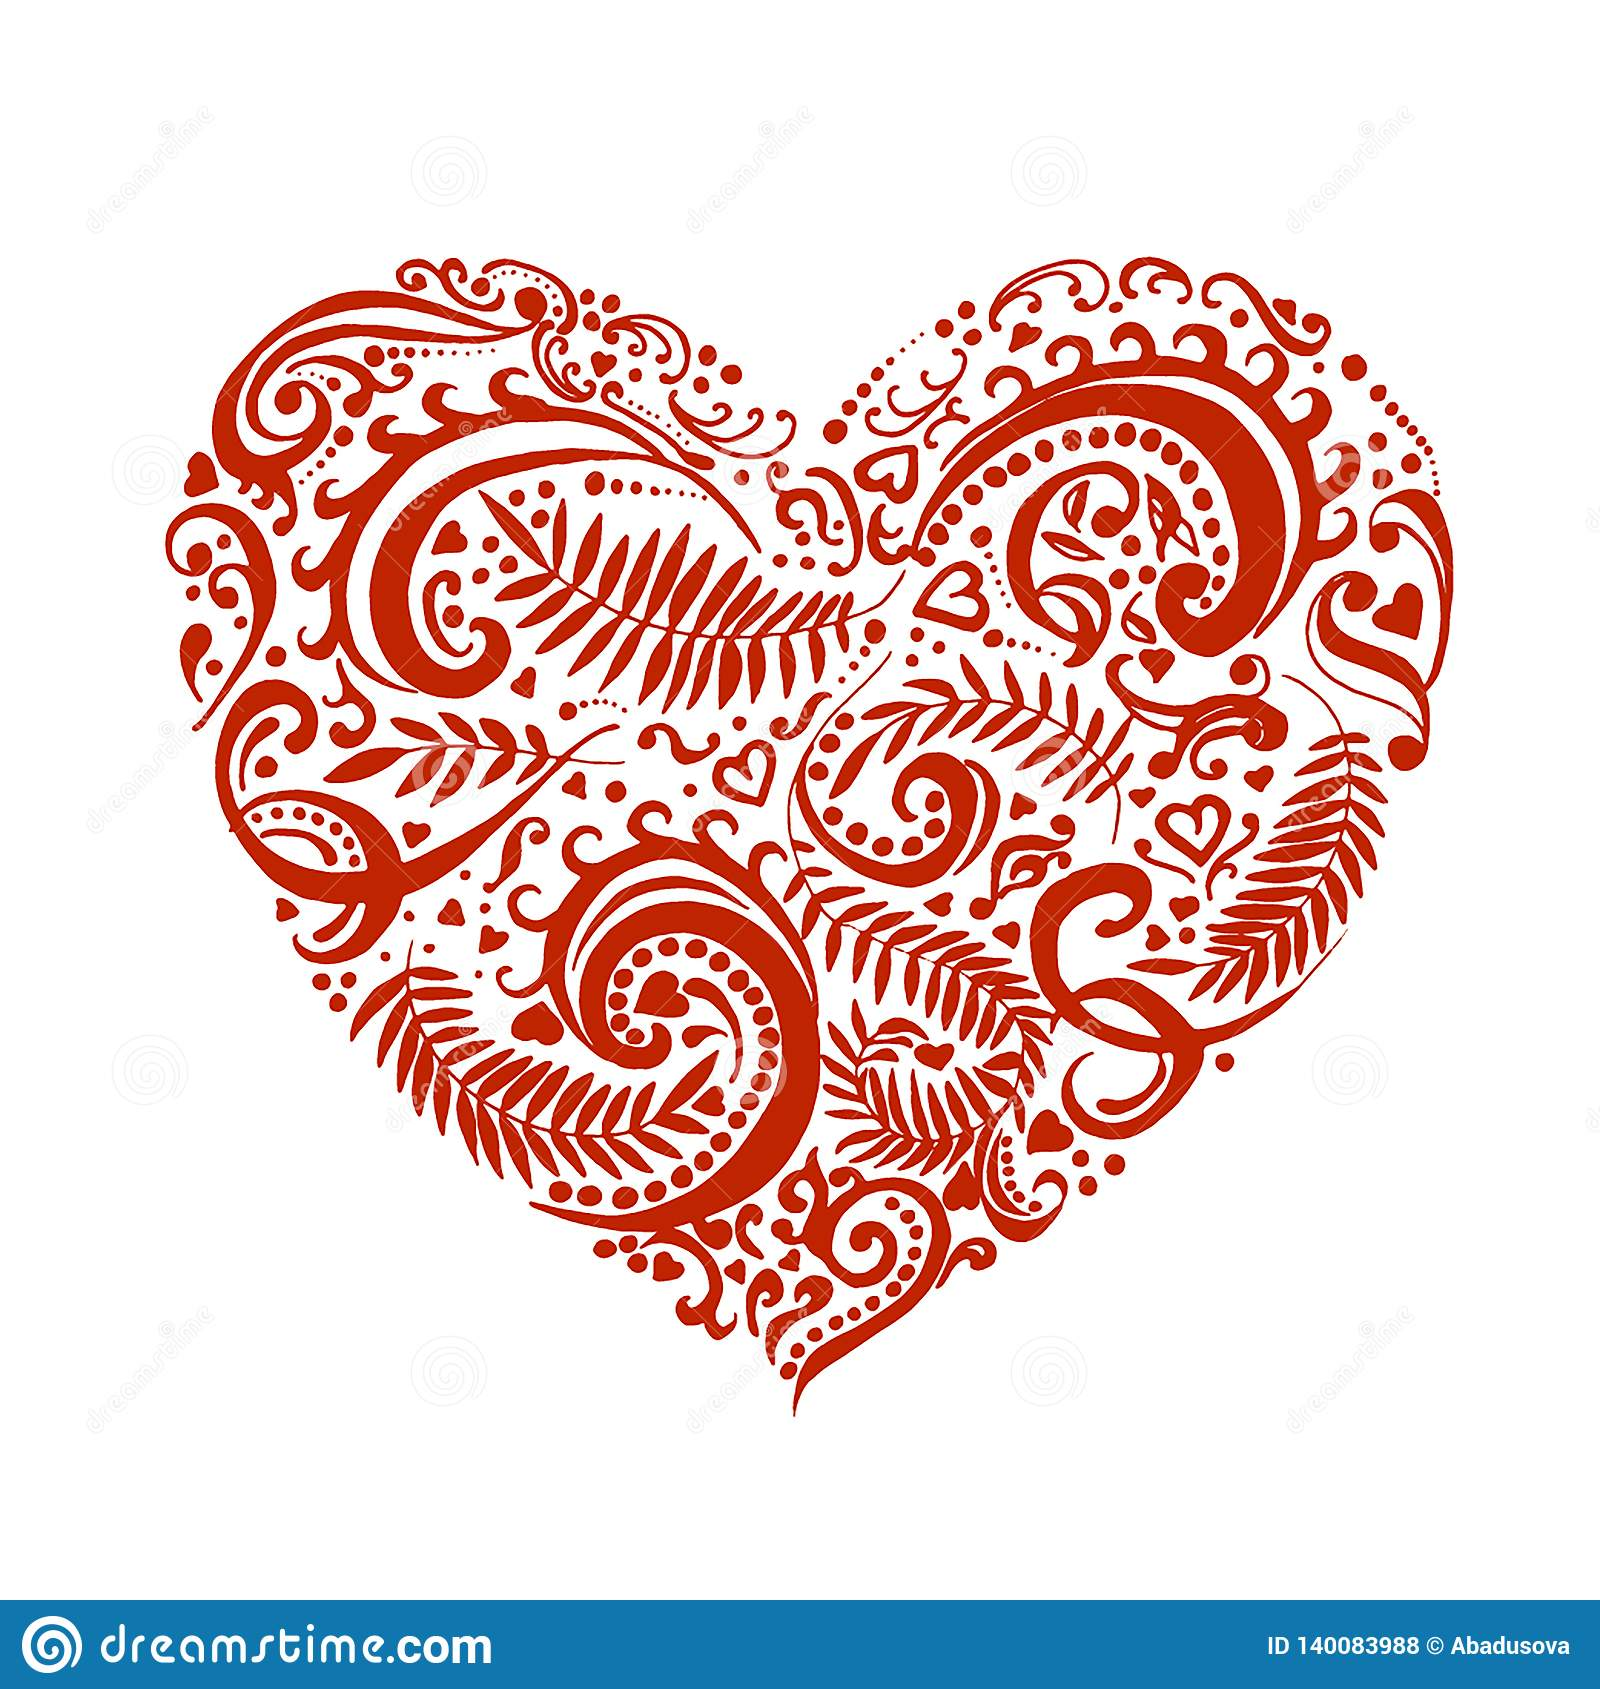 Vector Hand drawn sketch of heart with ornaments illustration on white background